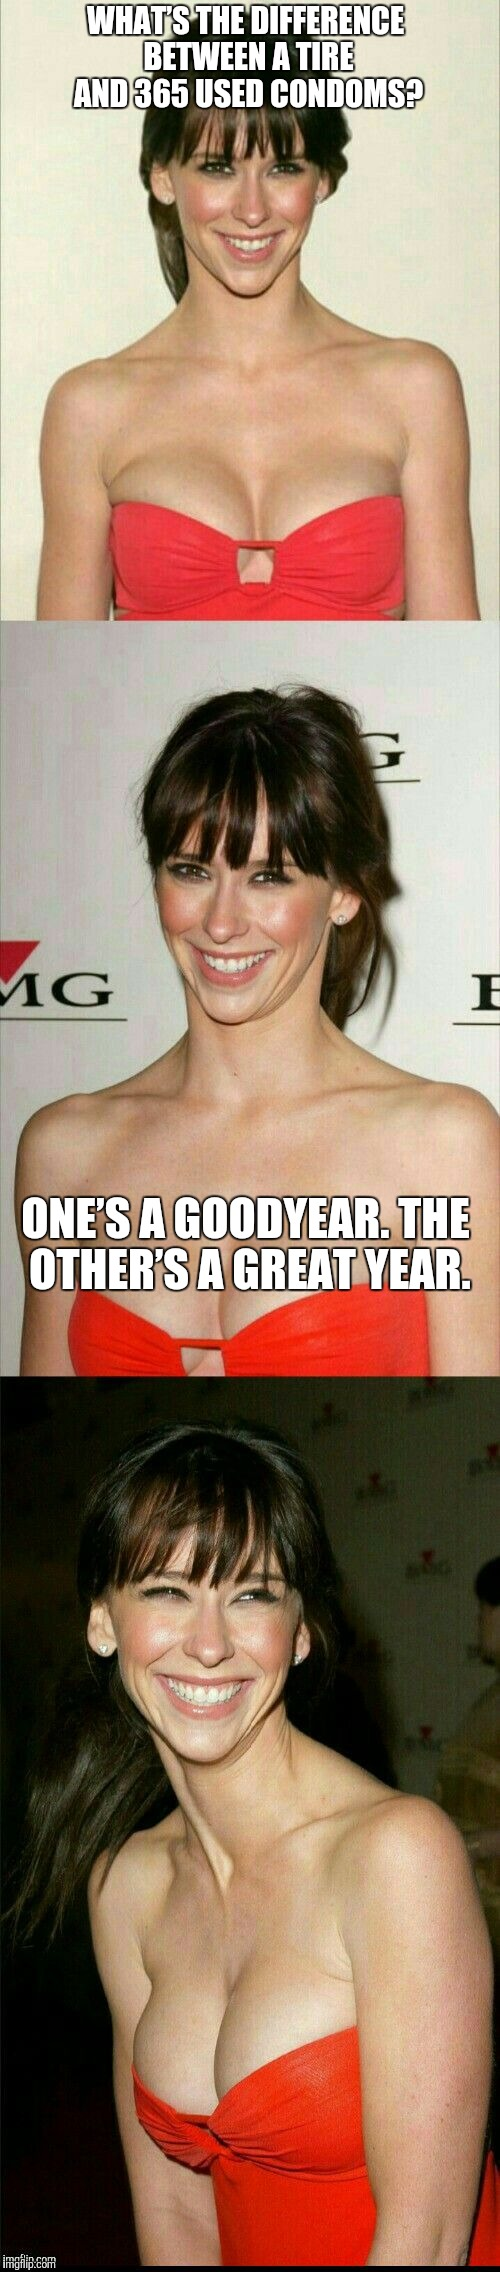 I Guess On Leap Year You Get a Rest | WHAT'S THE DIFFERENCE BETWEEN A TIRE AND 365 USED CONDOMS? ONE'S A GOODYEAR. THE OTHER'S A GREAT YEAR. | image tagged in jennifer love hewitt joke template | made w/ Imgflip meme maker